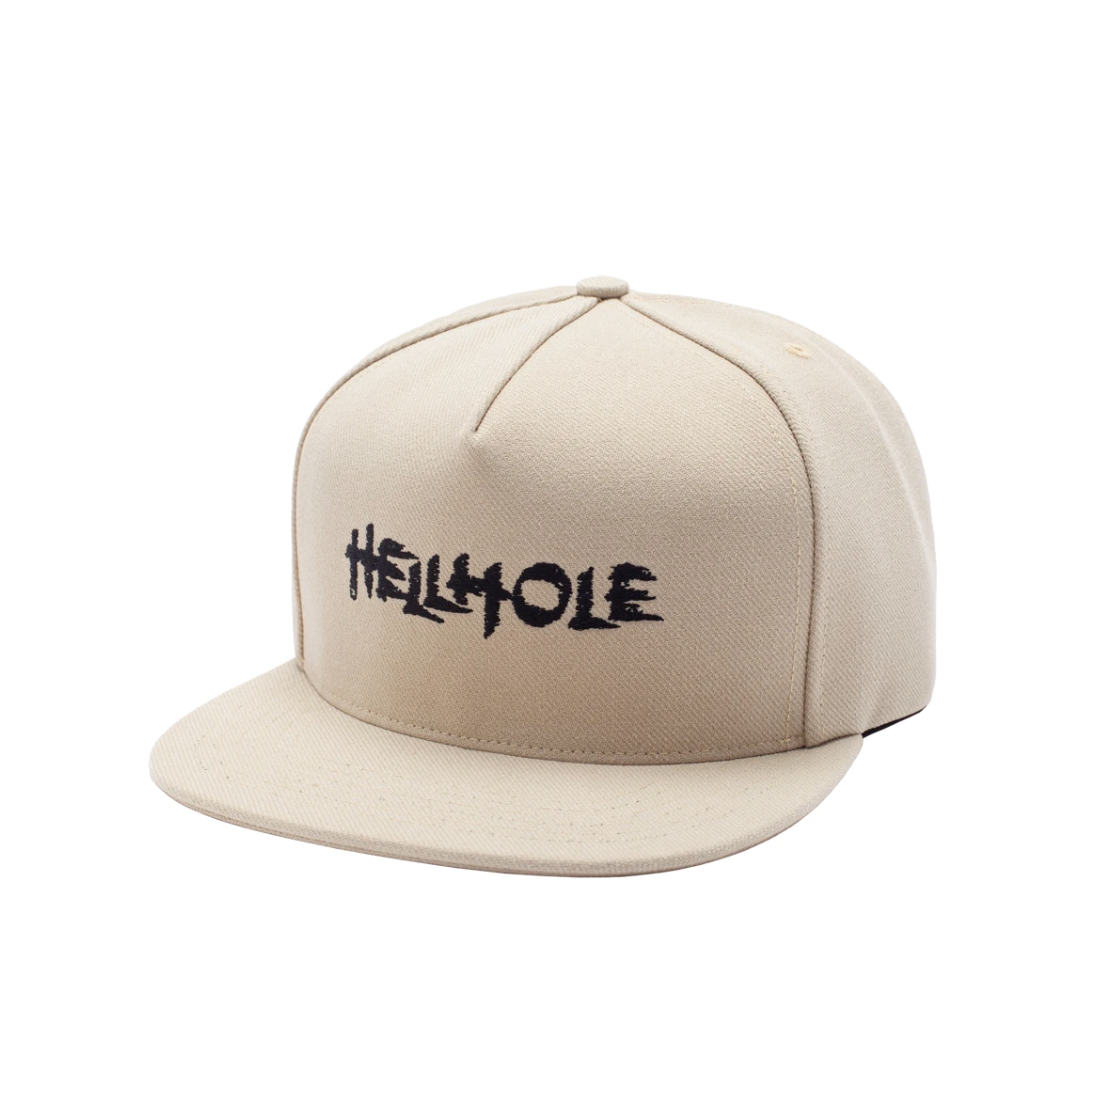 【Hockey】Hellhole 5Panel Cap - Tan